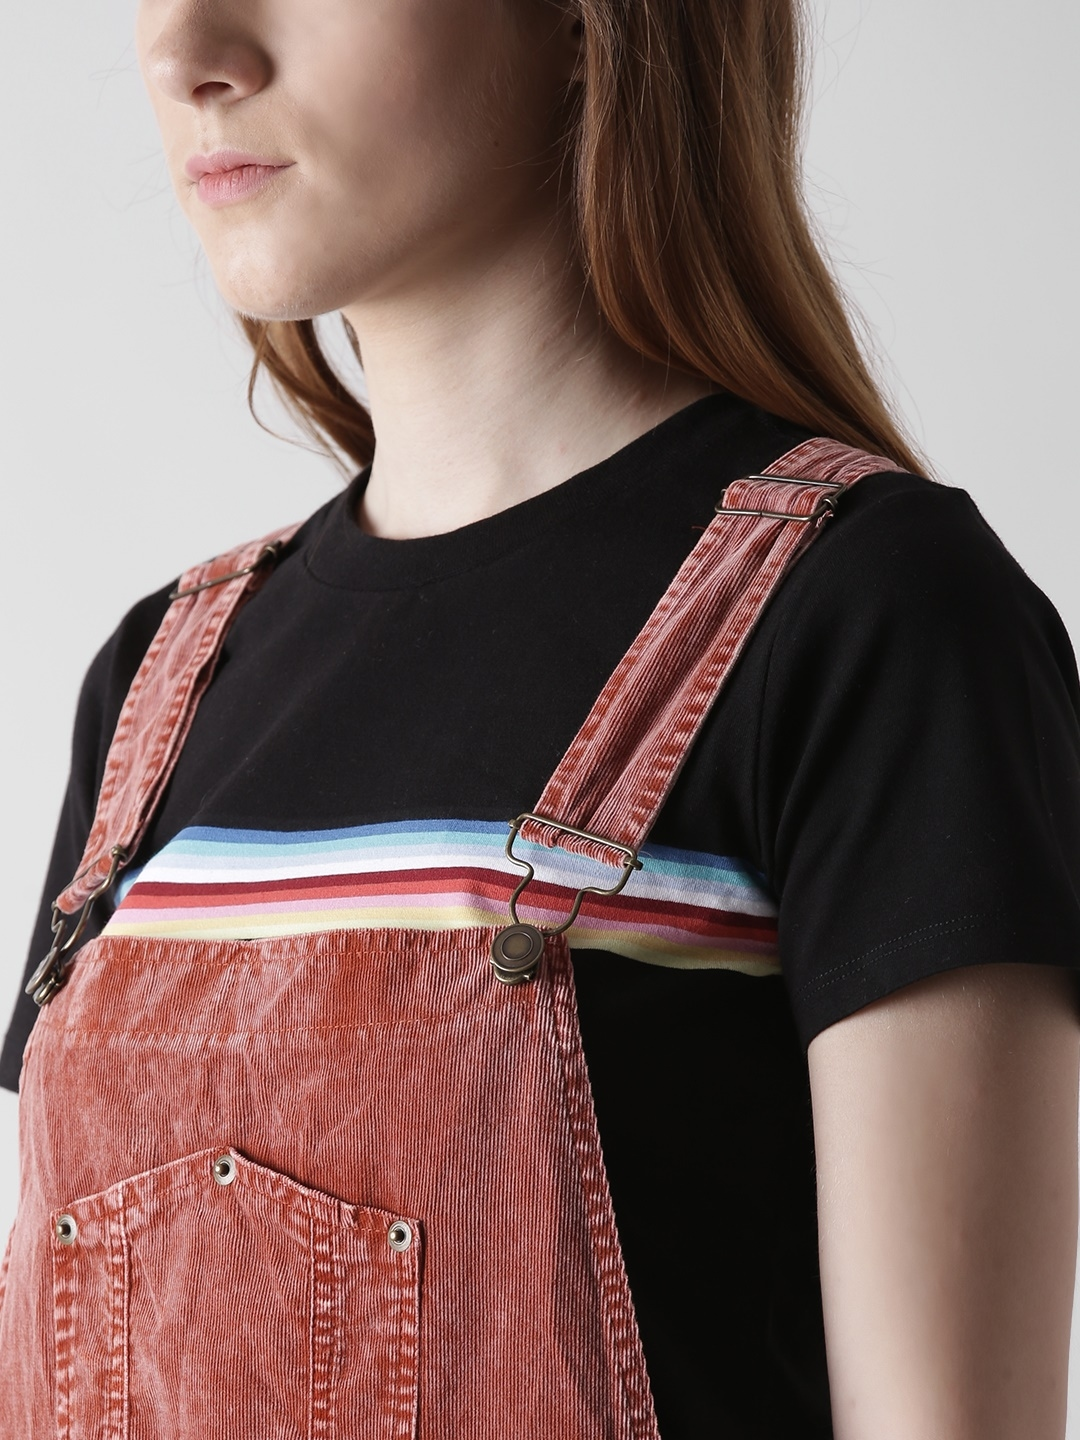 bbf838a8af Buy FOREVER 21 Rust Orange Corduroy Dungarees - Dungarees for Women ...